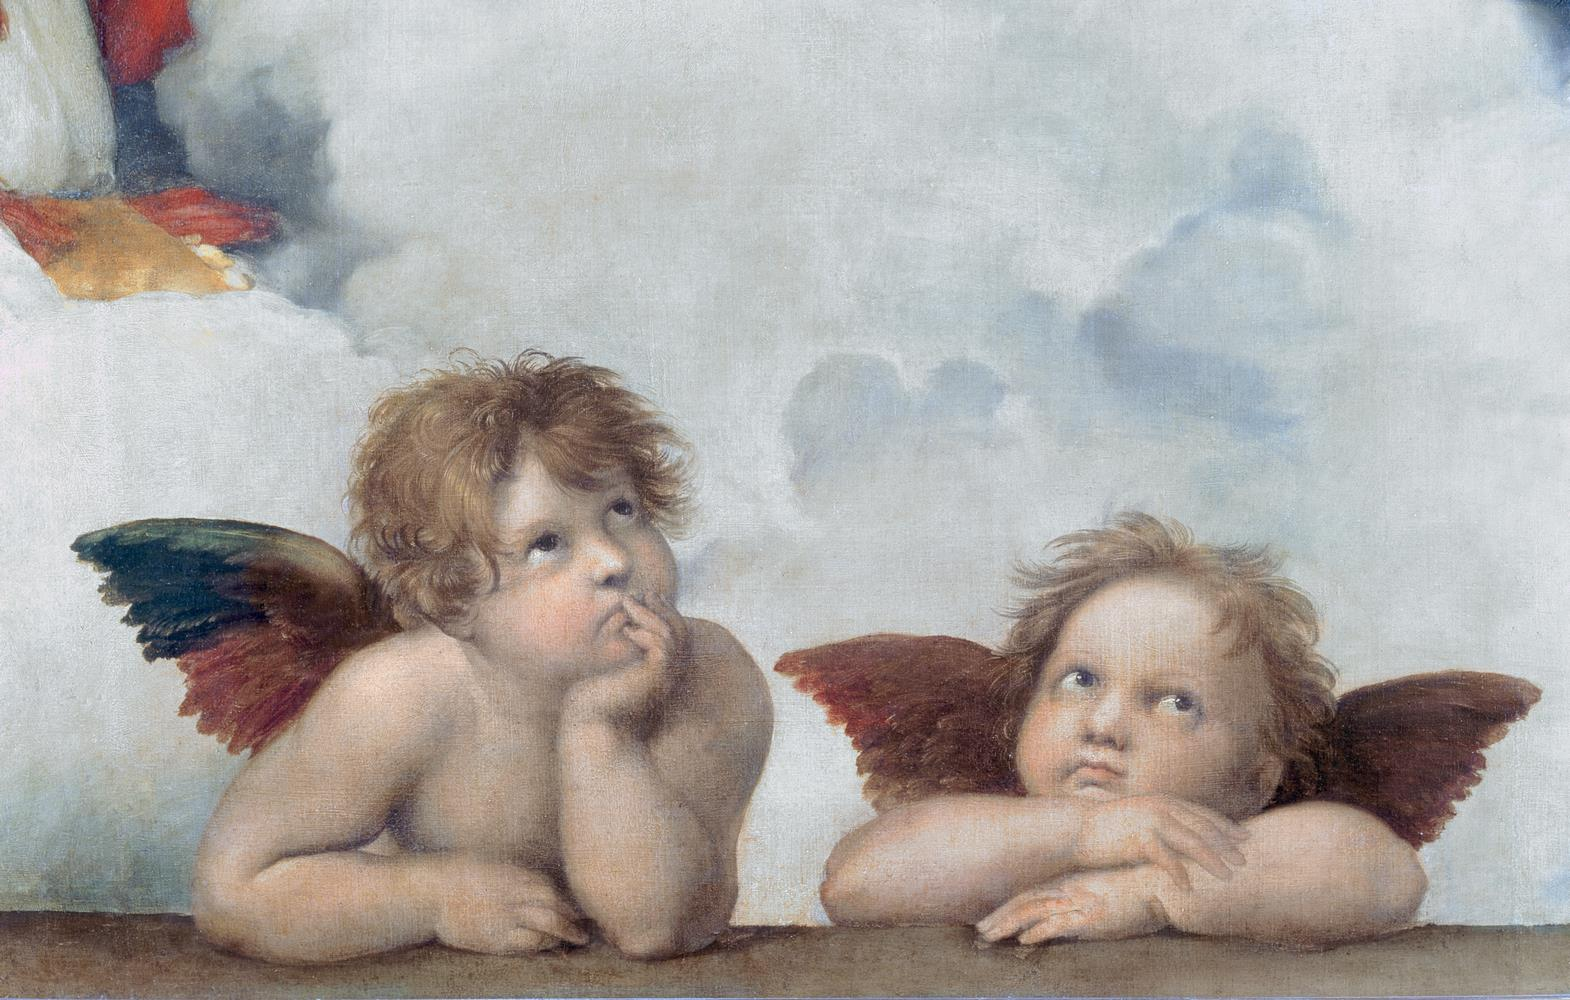 Carta da parati I due putti, La Cappella Sistina, Raffaello Sanzio MyCollection